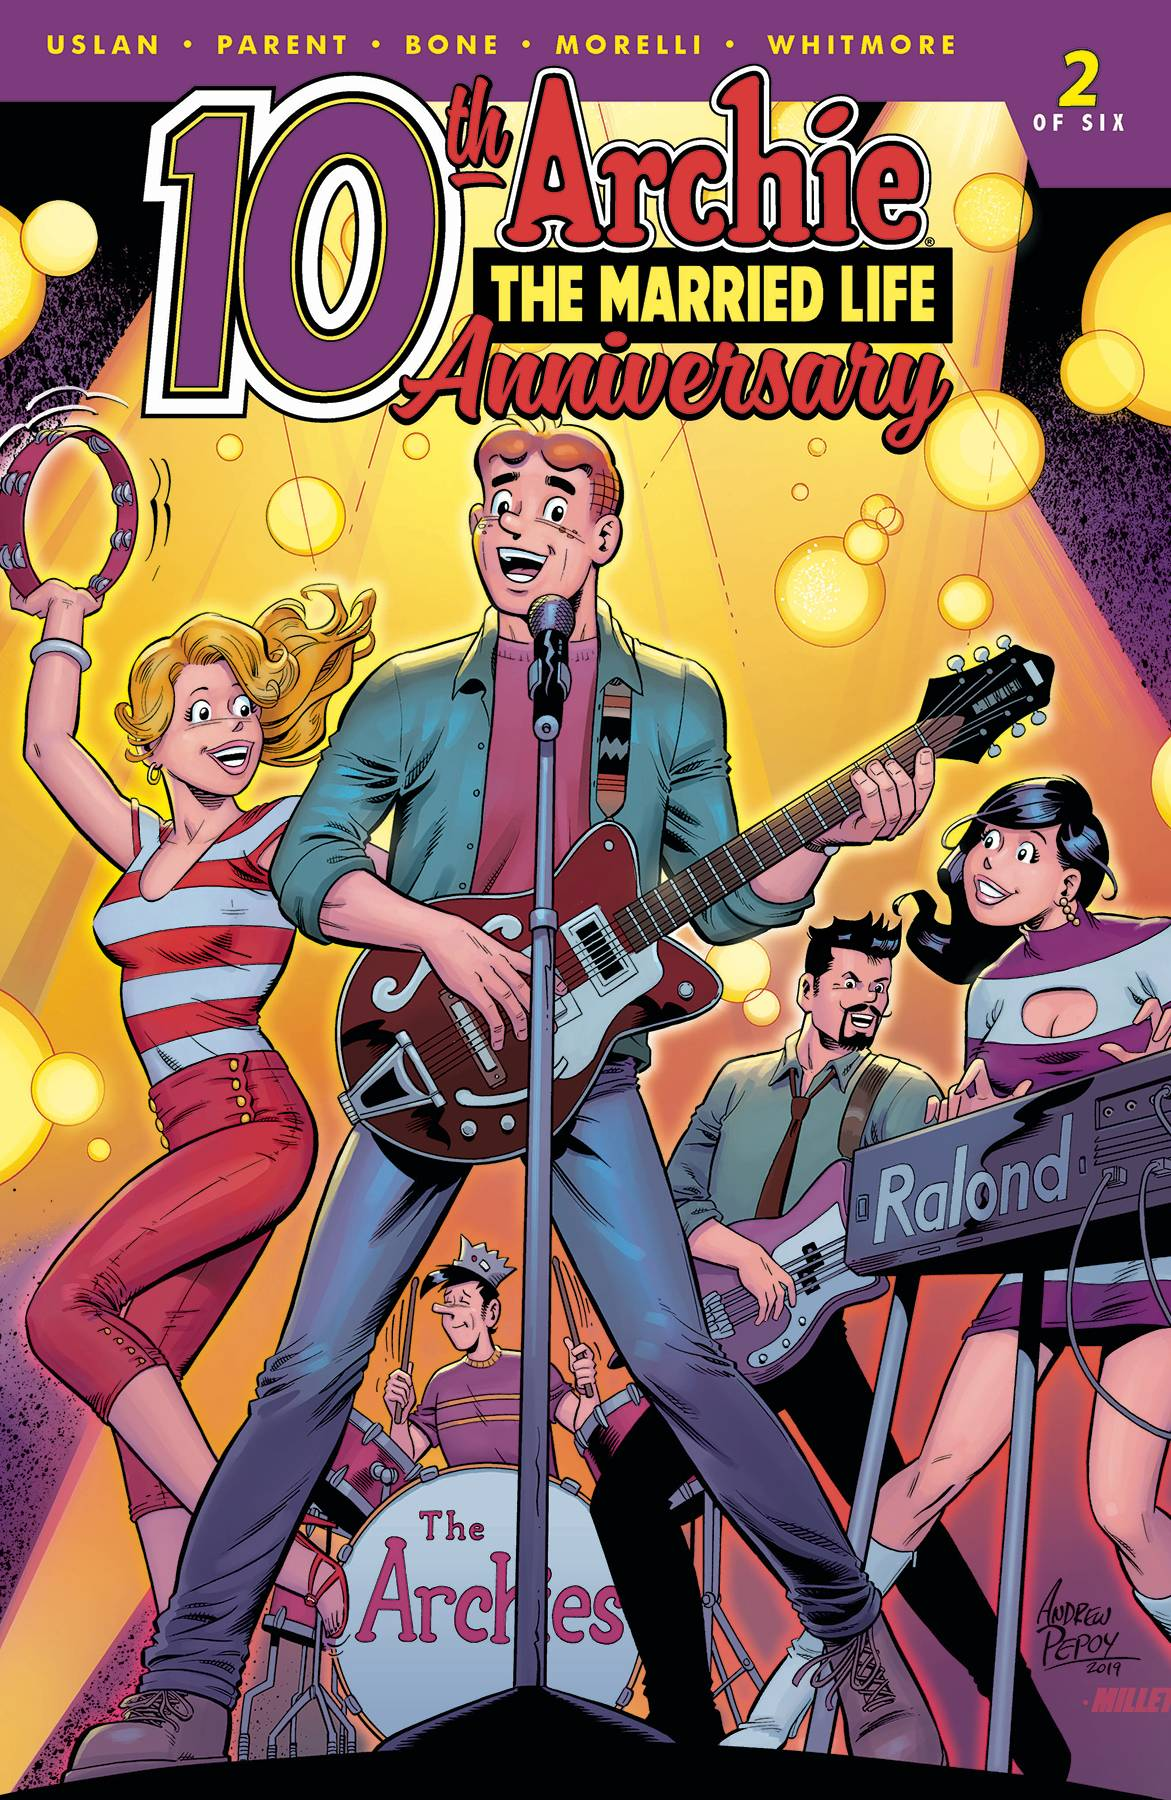 ARCHIE MARRIED LIFE 10 YEARS LATER 2 CVR C PEPOY.jpg